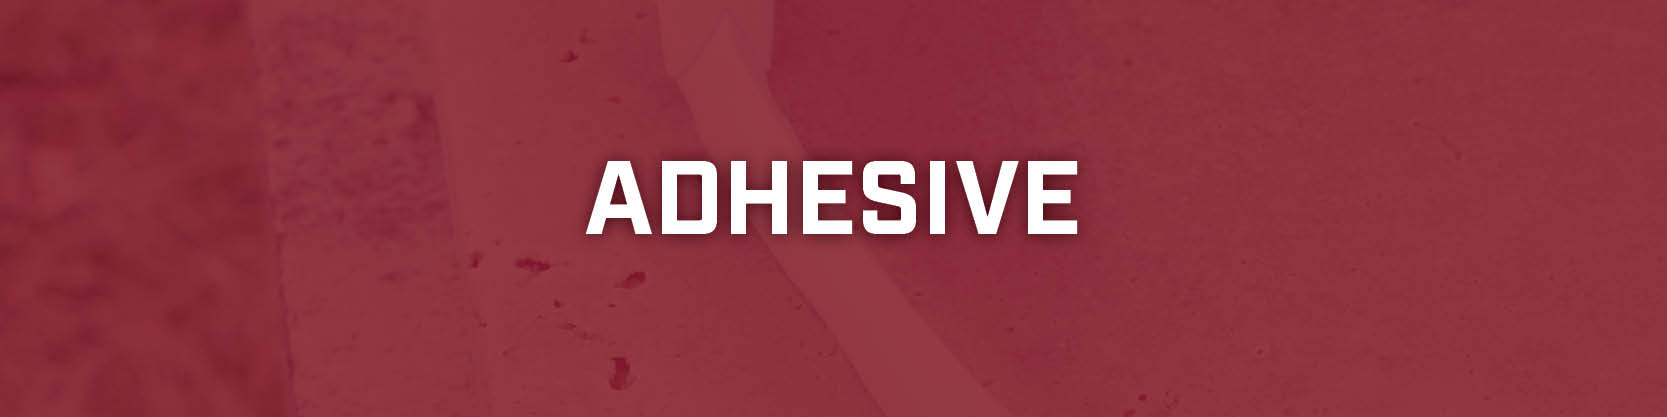 ProductCategories-Adhesive